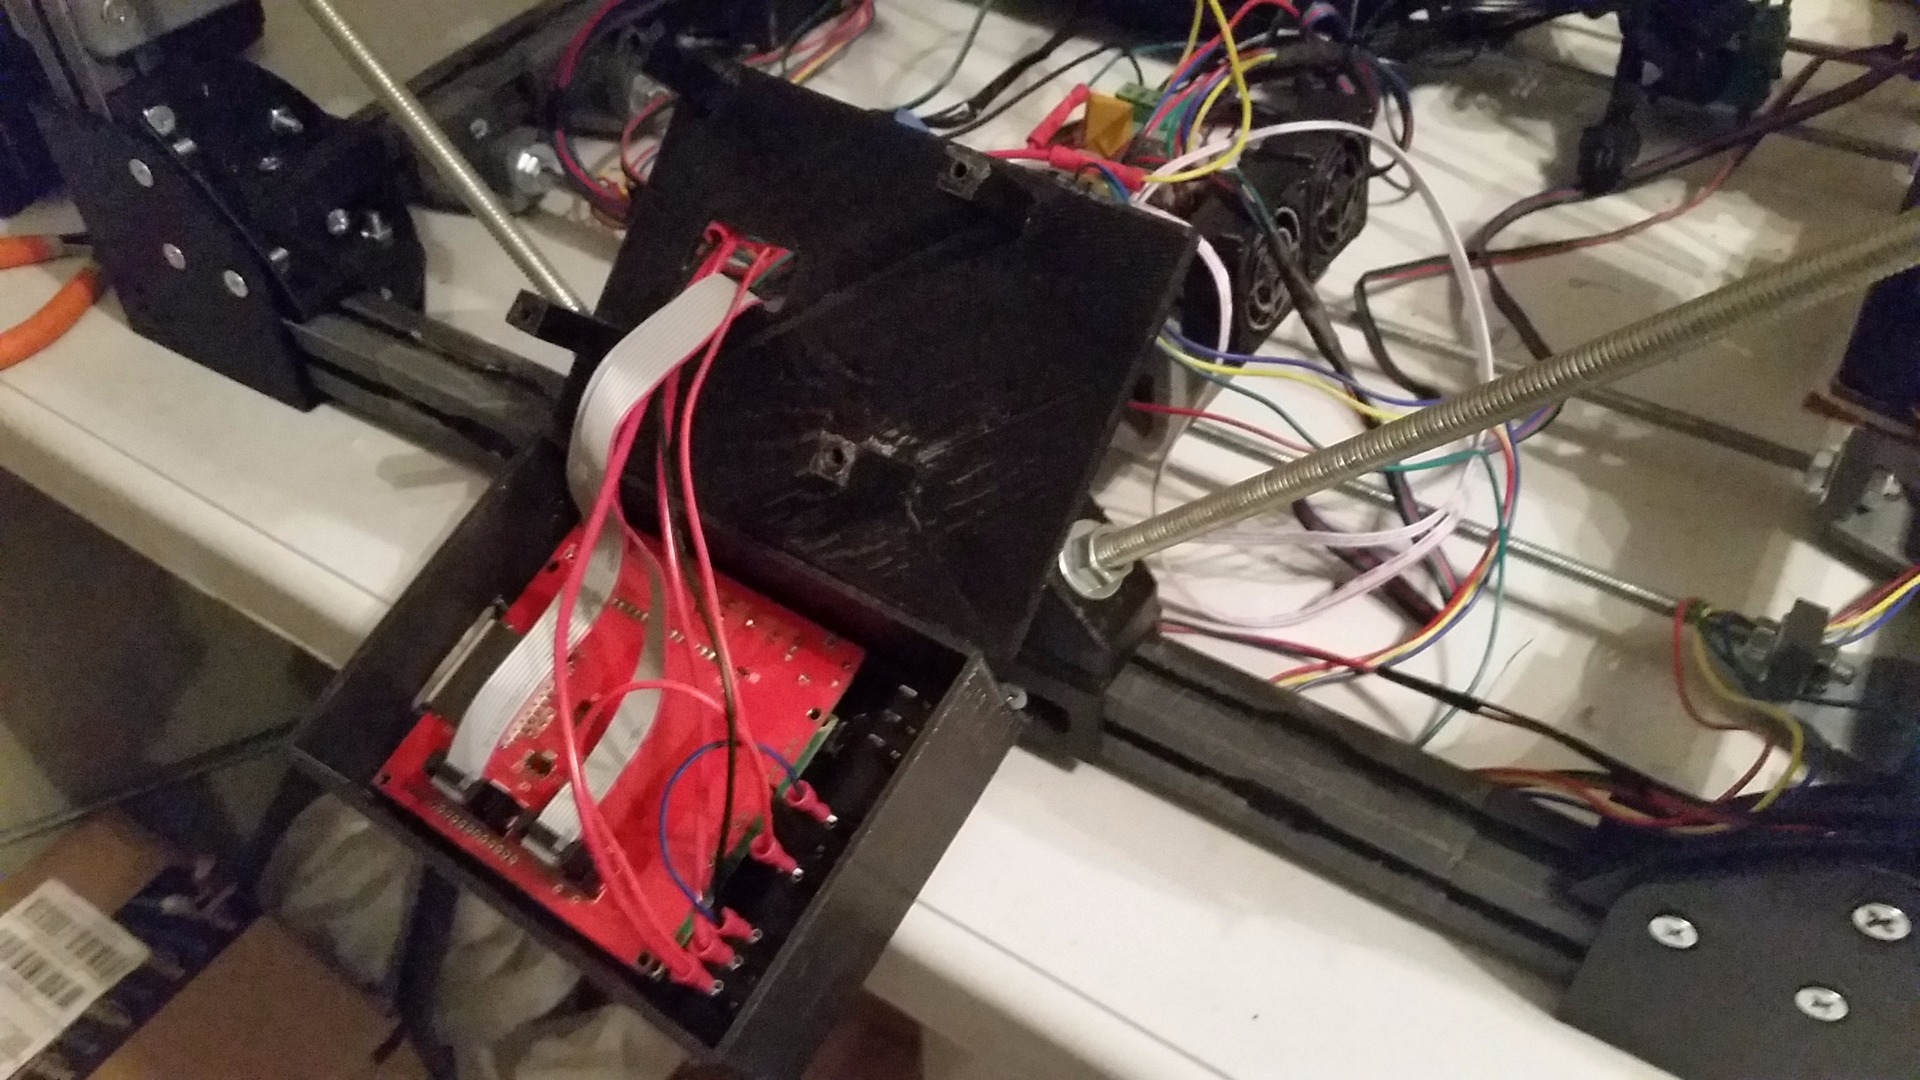 Picture of LCD Assembly, Ramps 1.4, and Endstops, Misc. Electronics